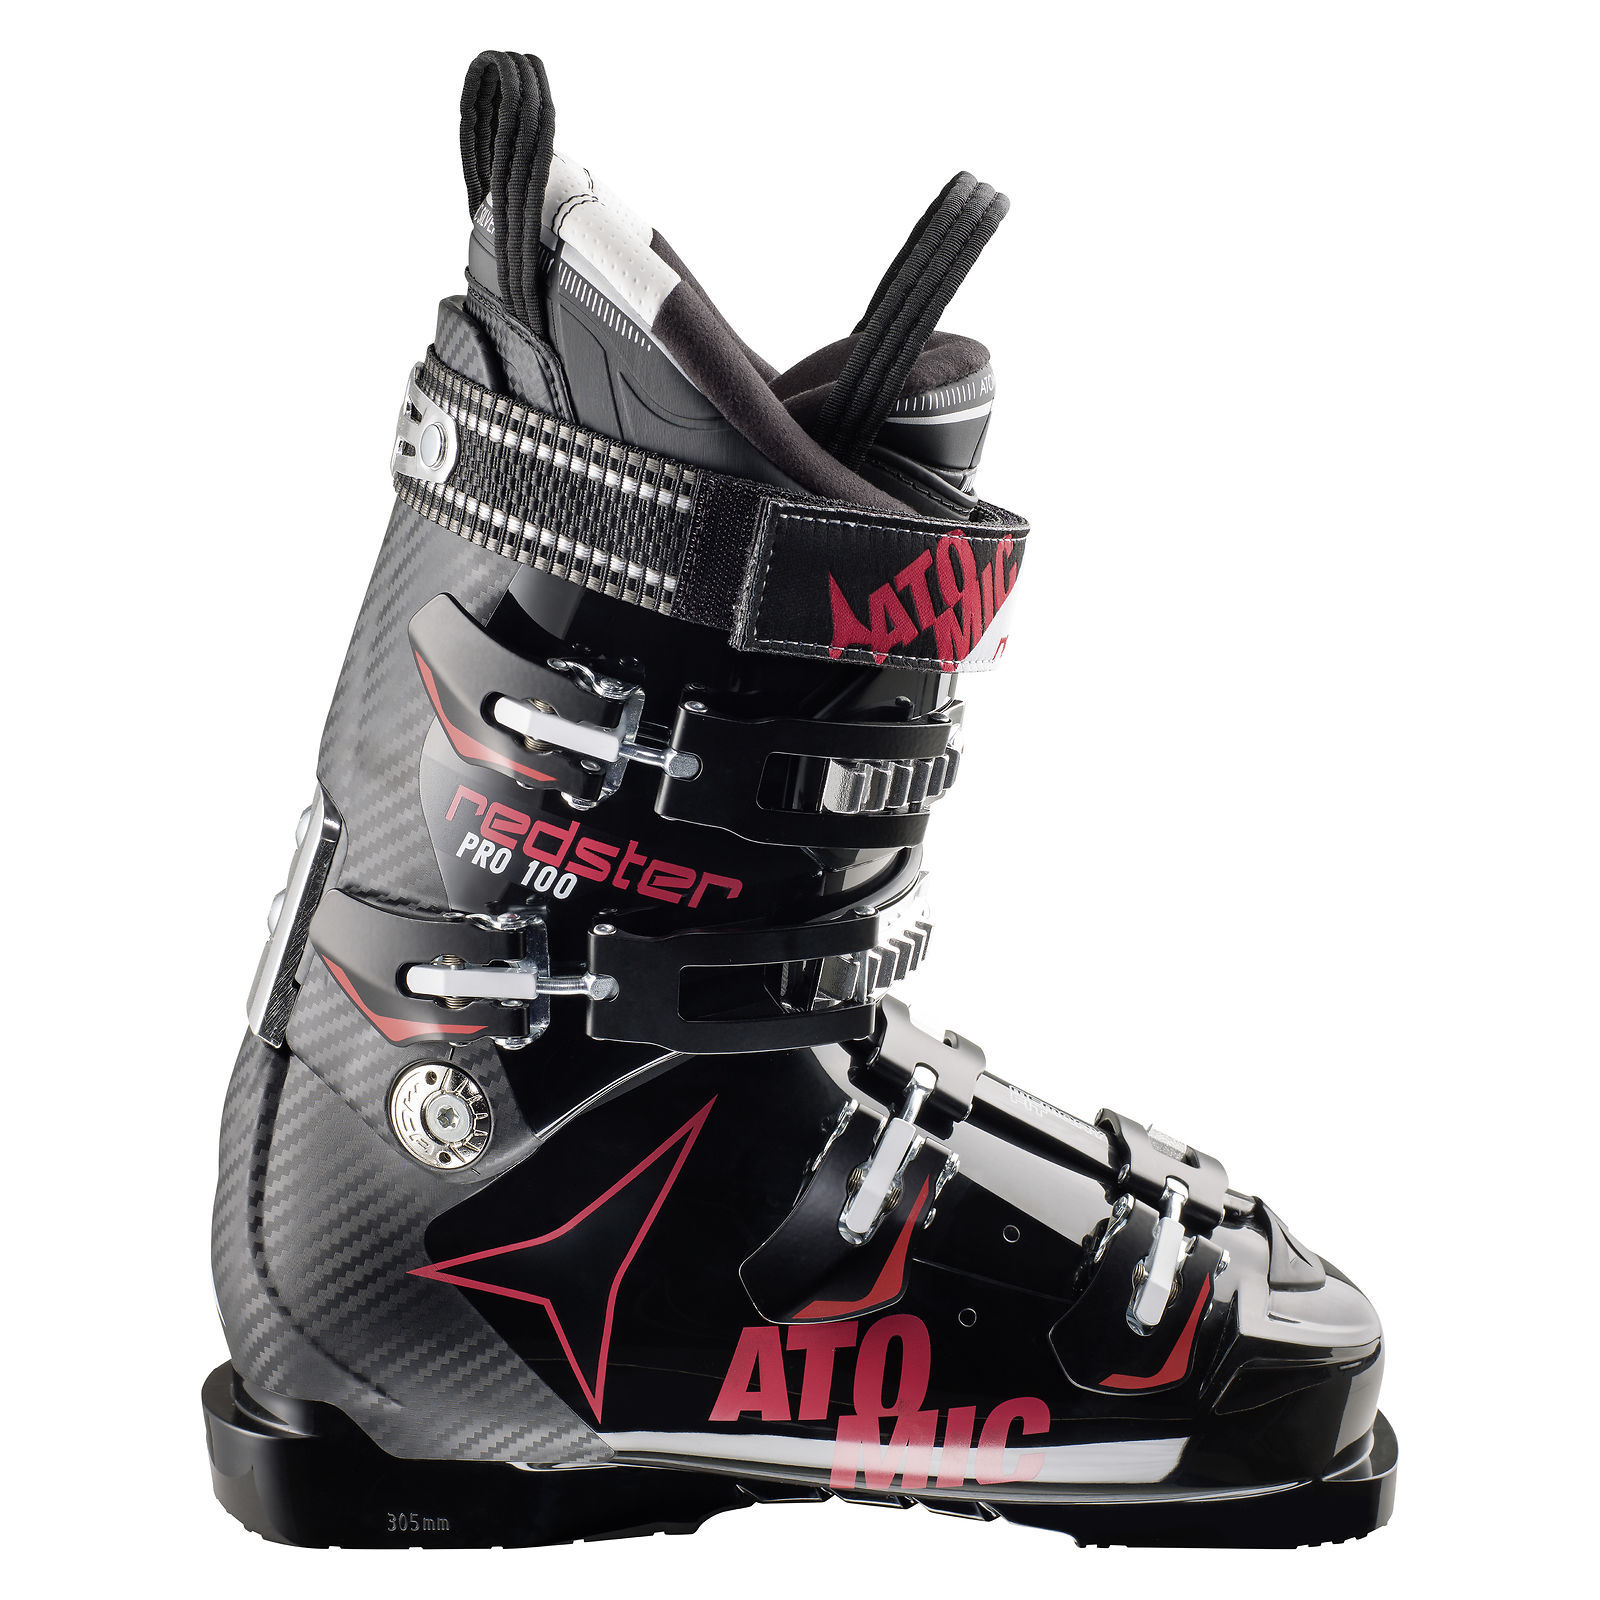 Buty Atomic Redster Pro 100 AE5011580 - outlet:29.5